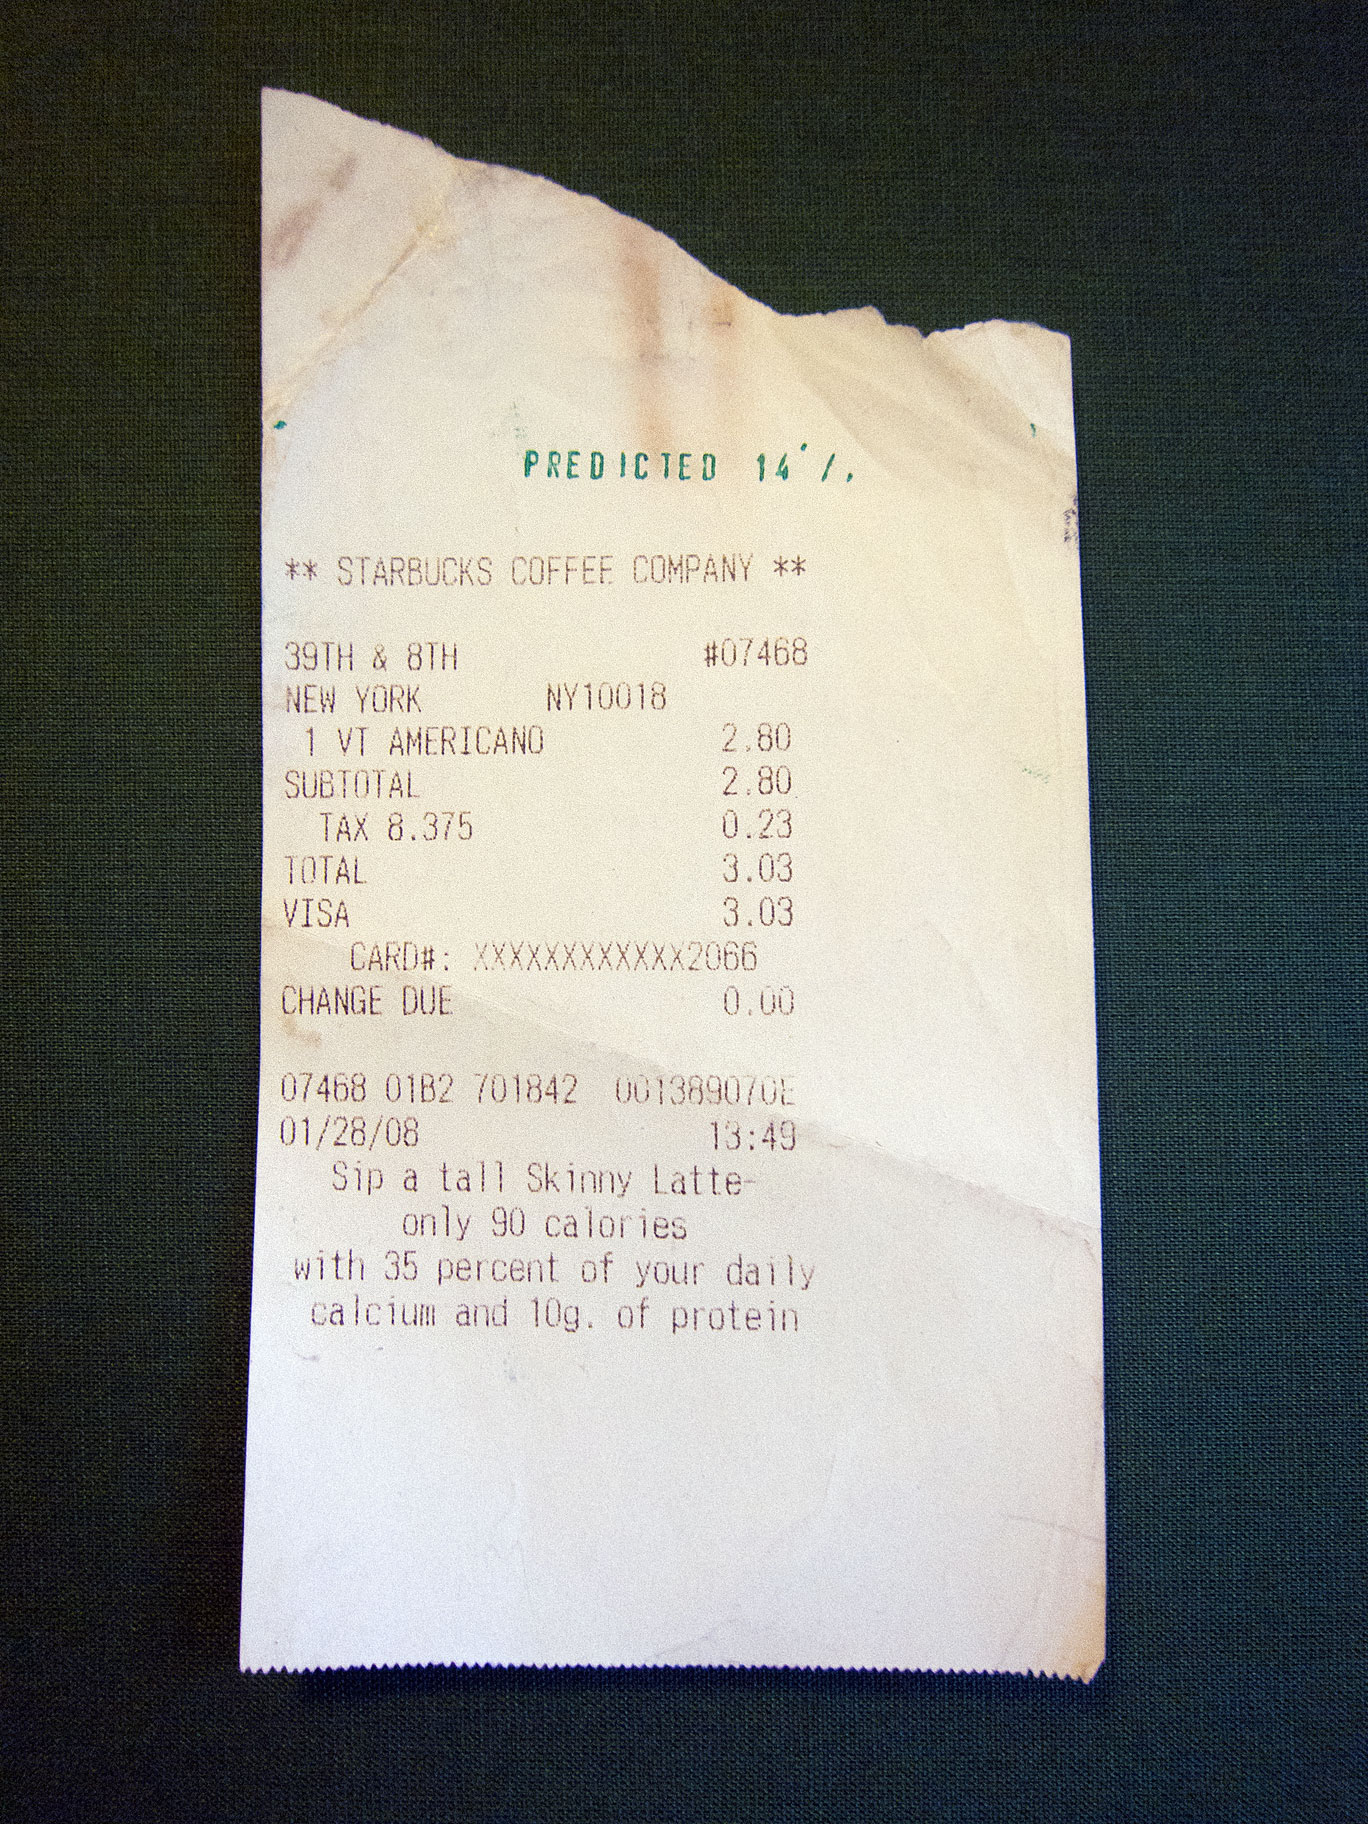 Receipt predicted 14%. Exhibition view, Neuberger Museum of Art, New York, 2009.